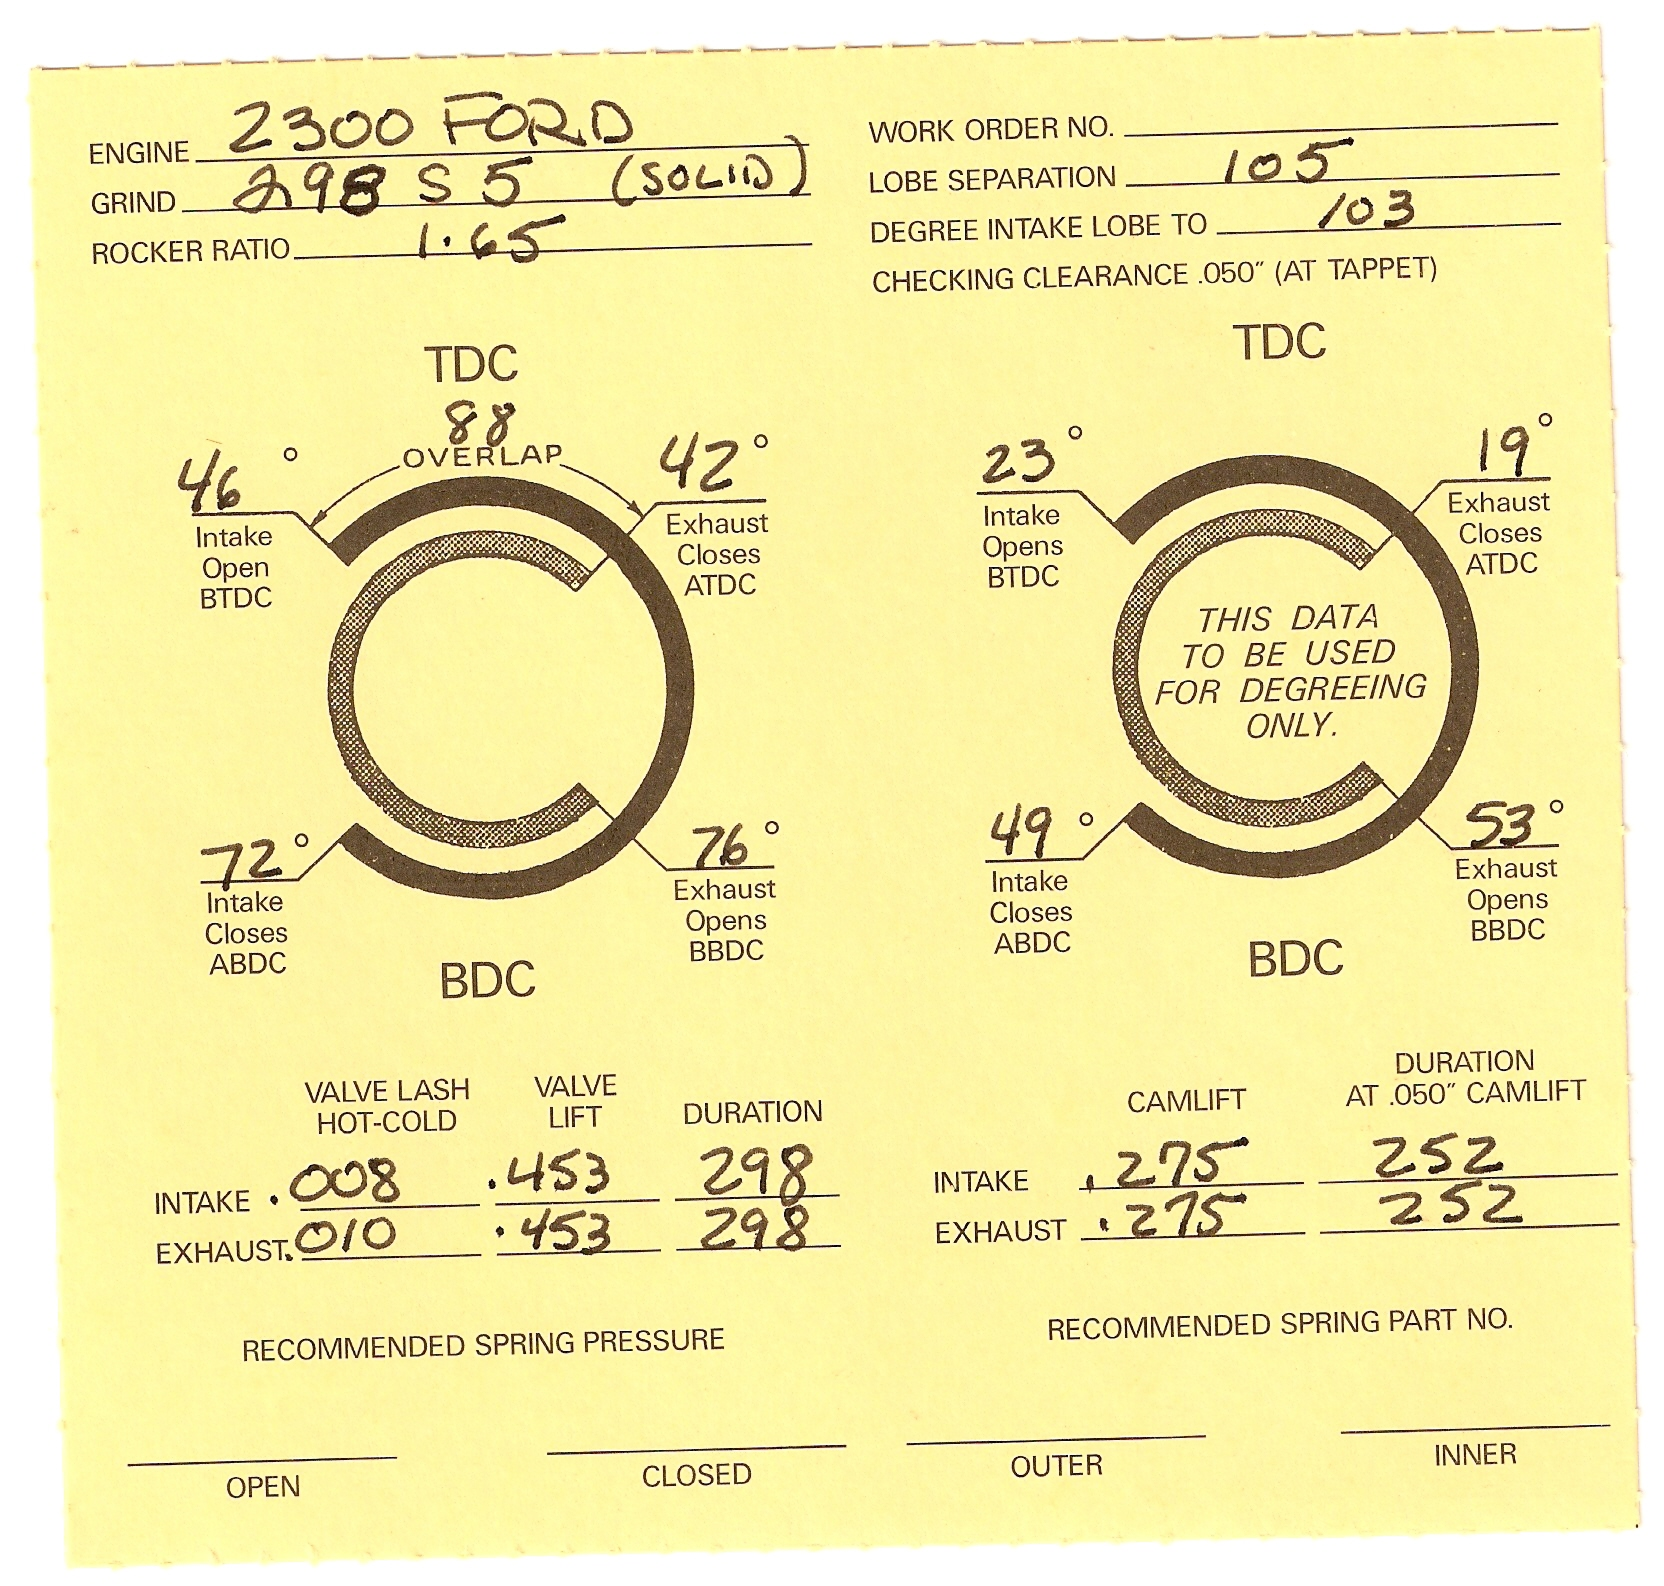 Ford 2300 And 2000 Engine Parts Online Race Engineering Stroker Diagram 3 1 Cam Card Fd 5 Solid